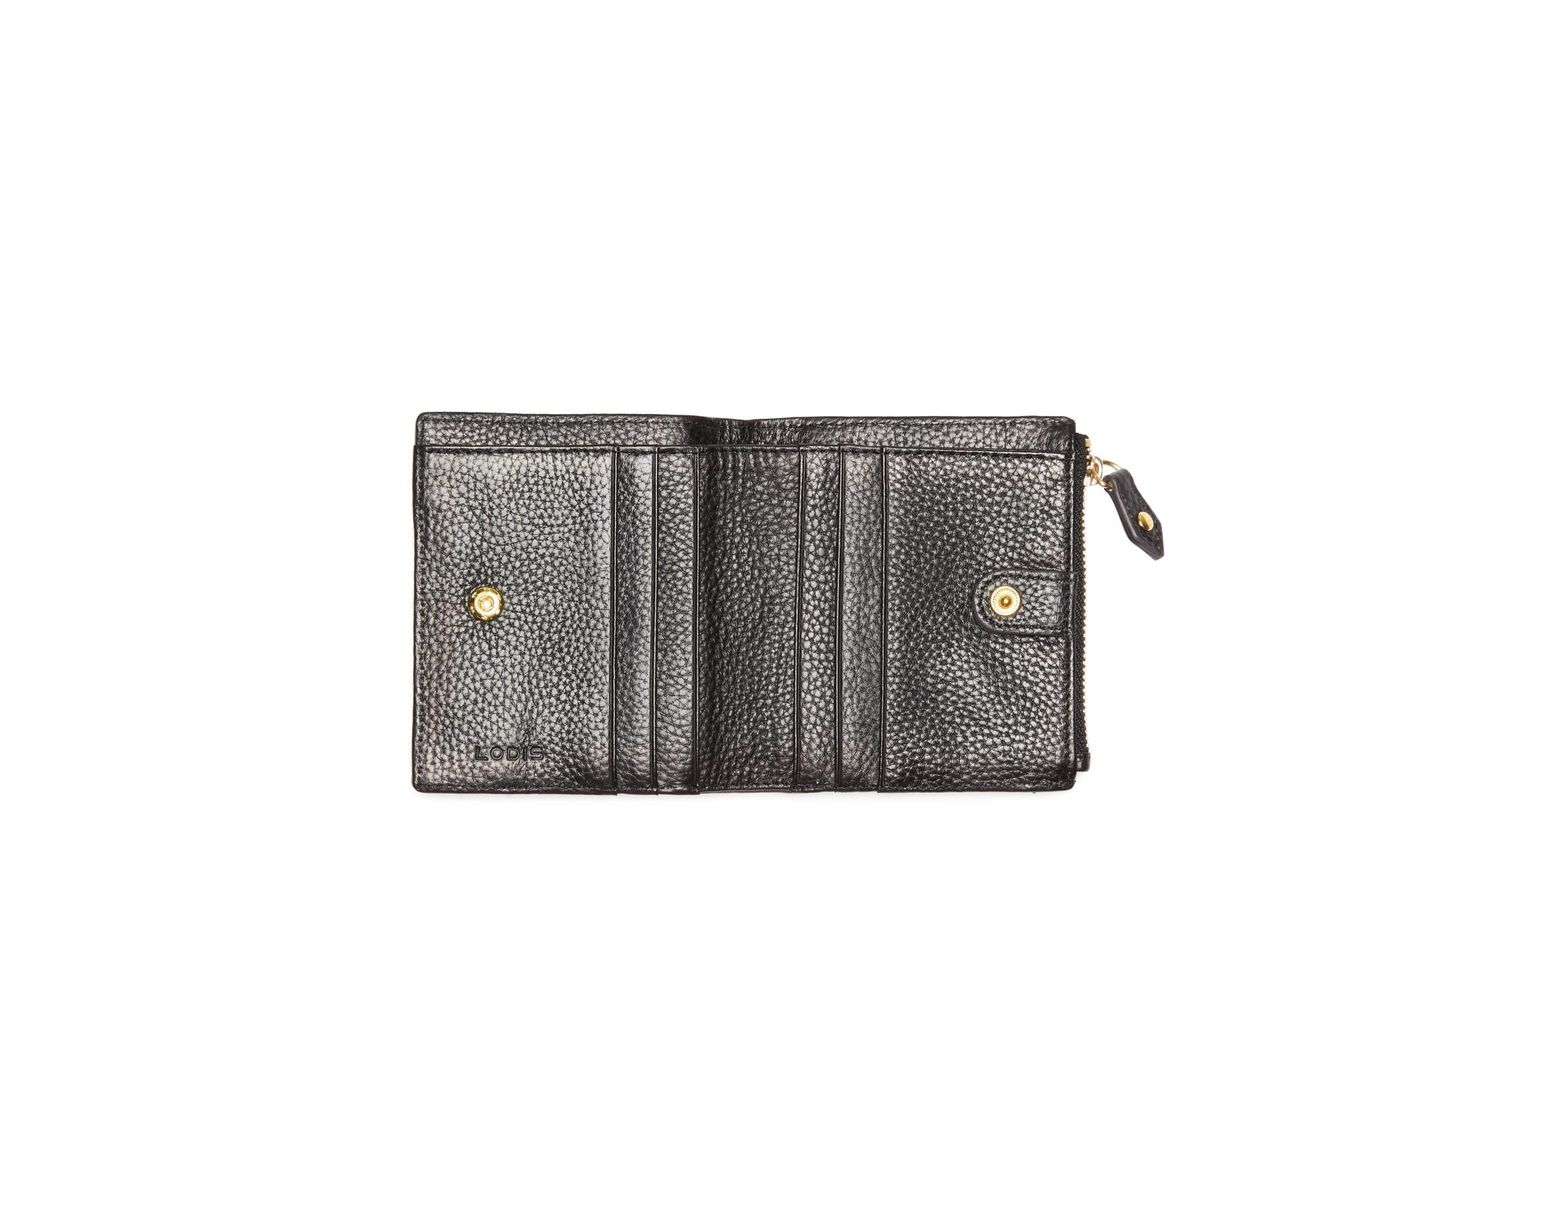 4db2c950d6 Lodis Colleen French Leather Wallet in Black - Lyst